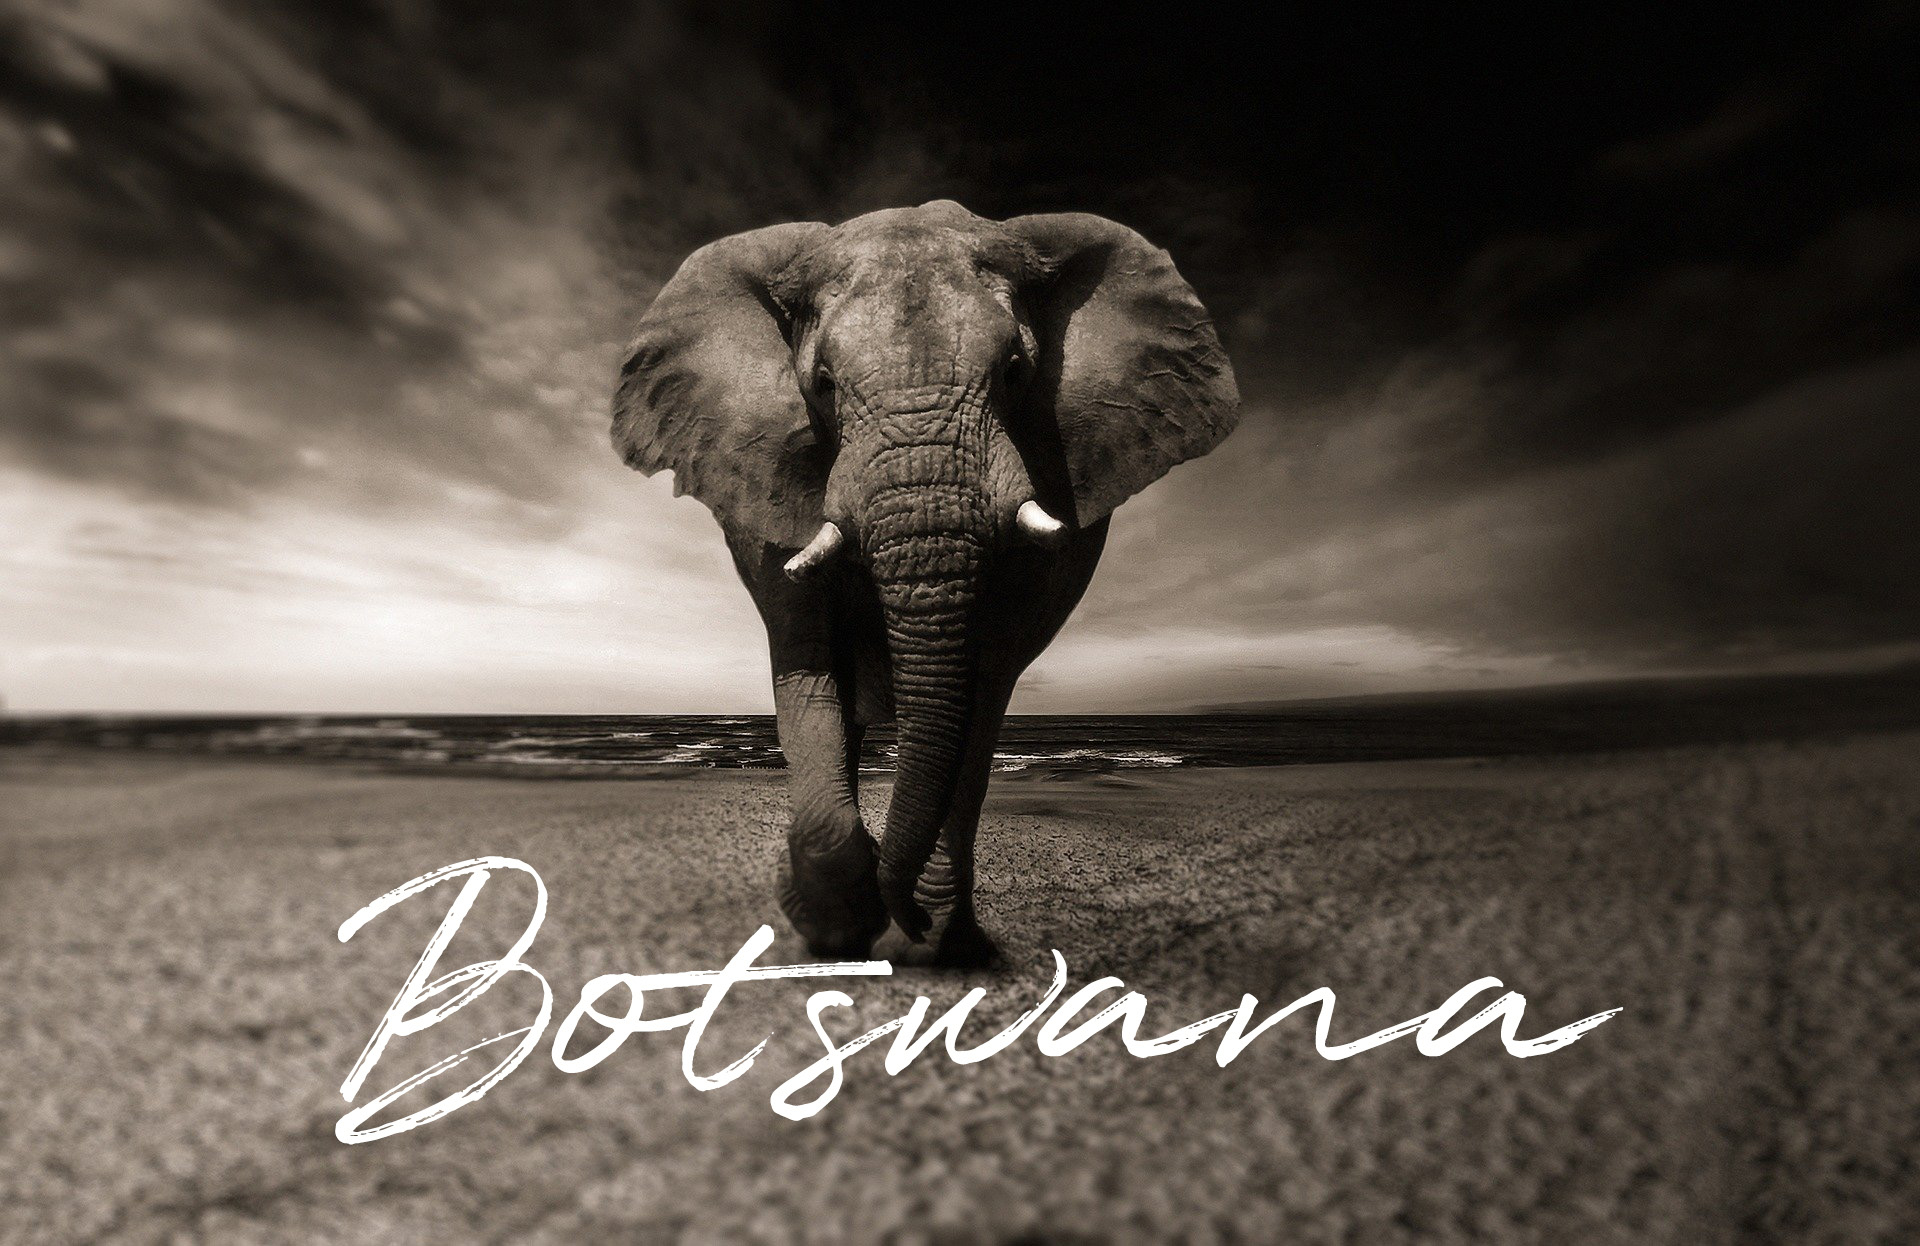 Viajes a Botswana en Lujo Exclusivo y A medida - The Indiana Travel Experiences